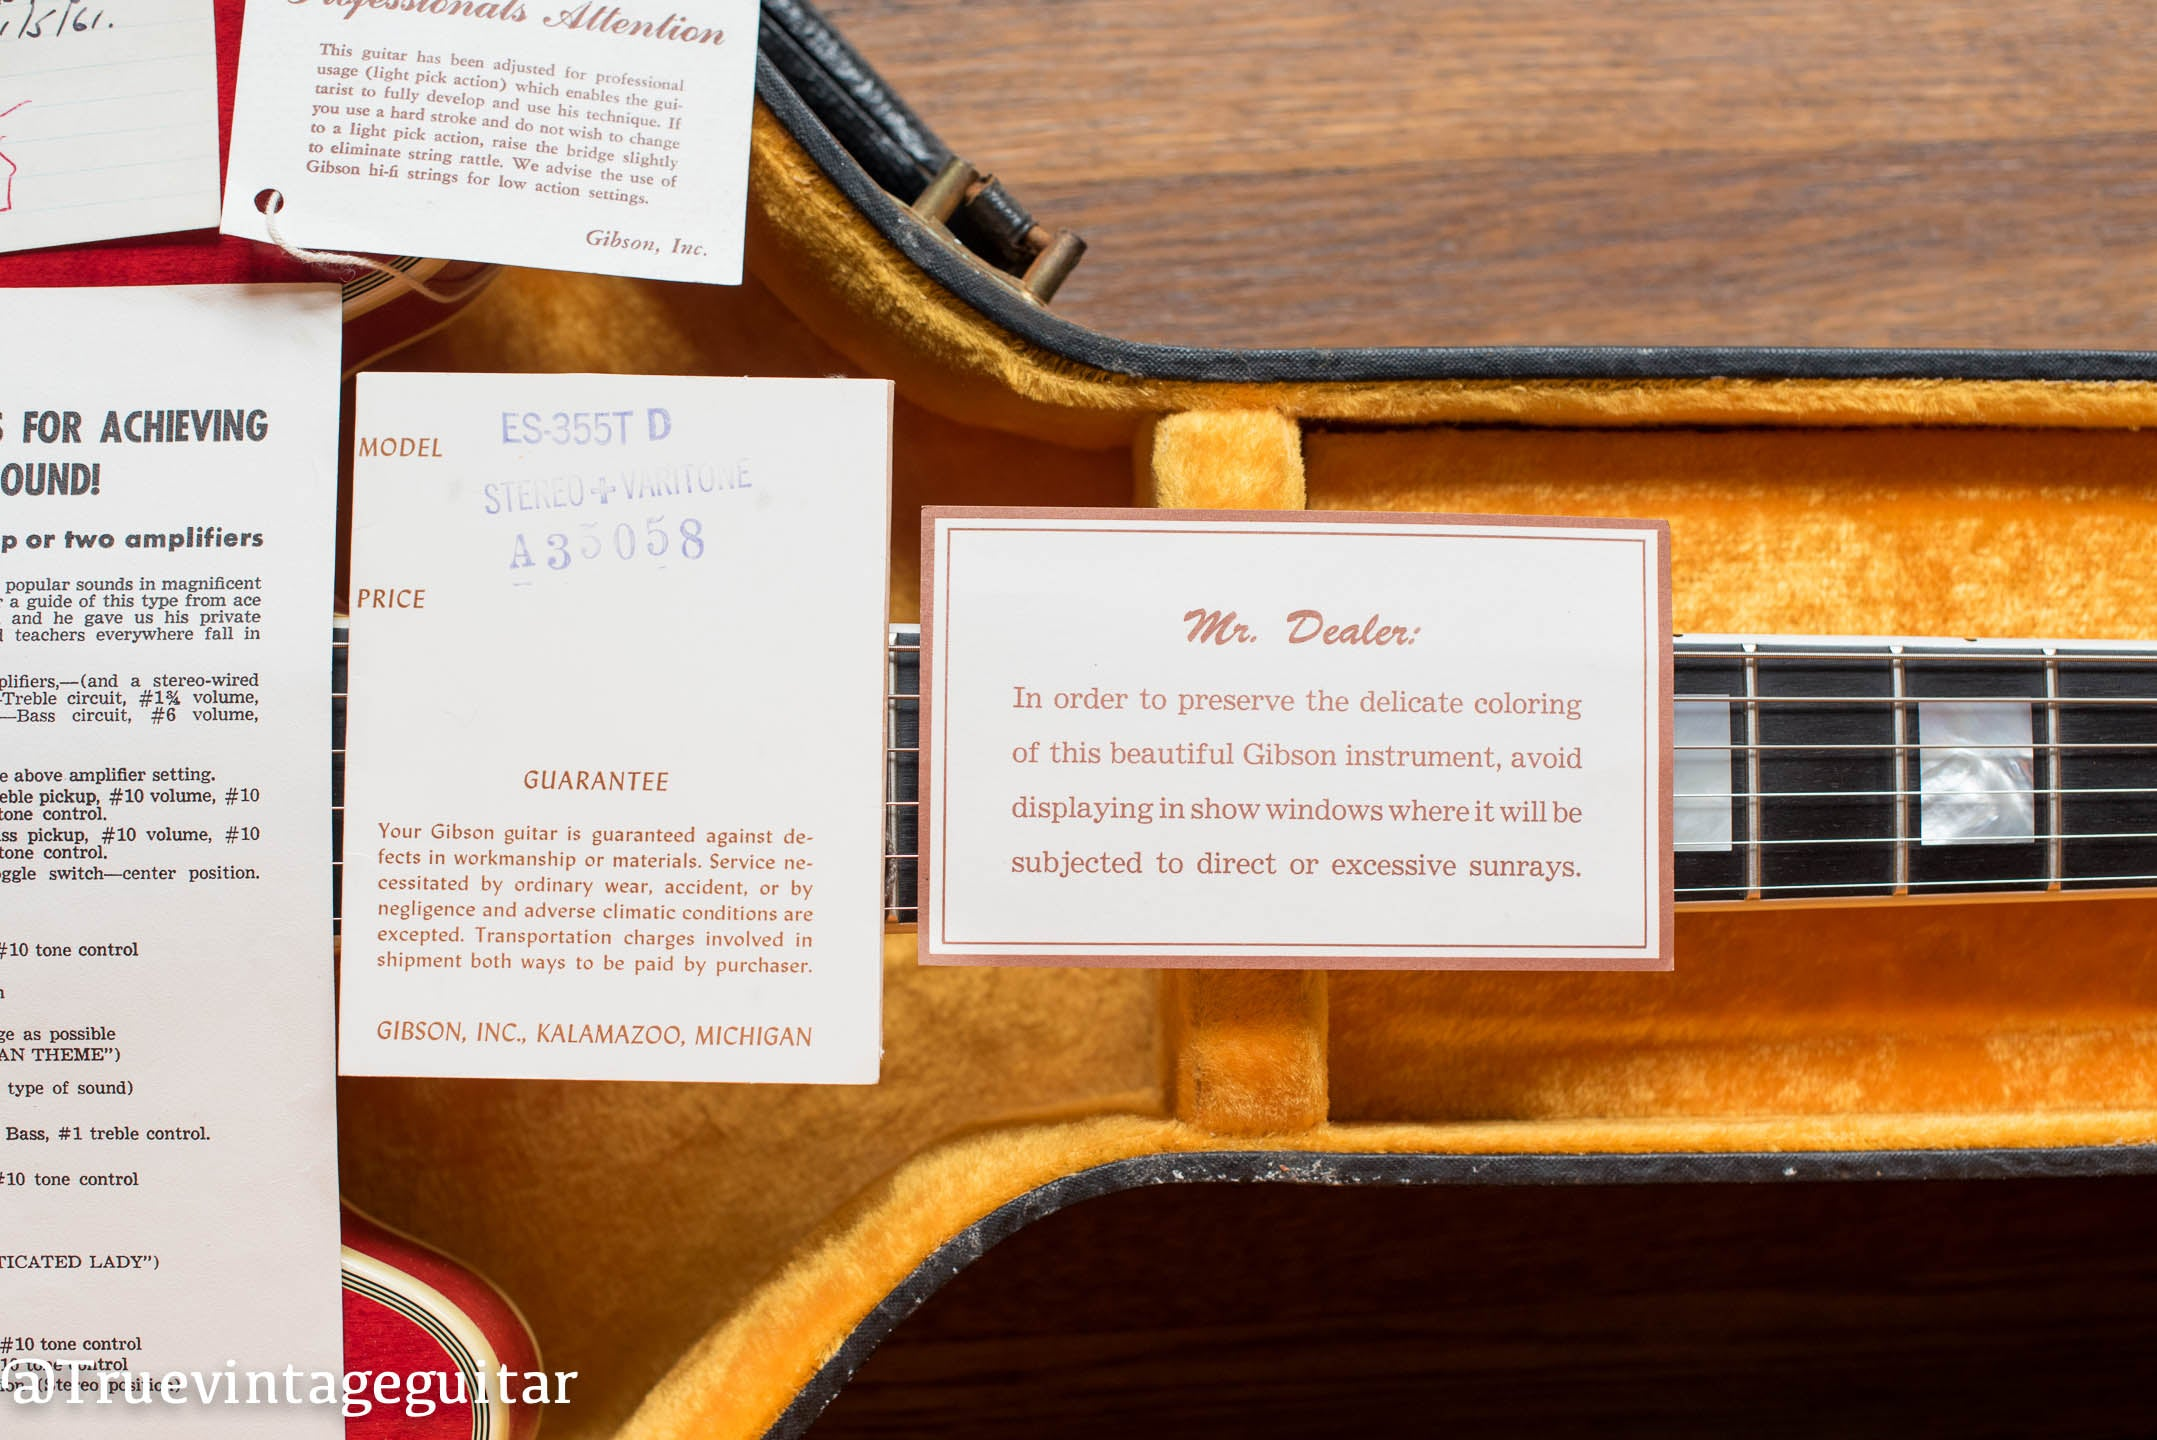 1960 Gibson ES-355 TDSV Mr. Dealer card